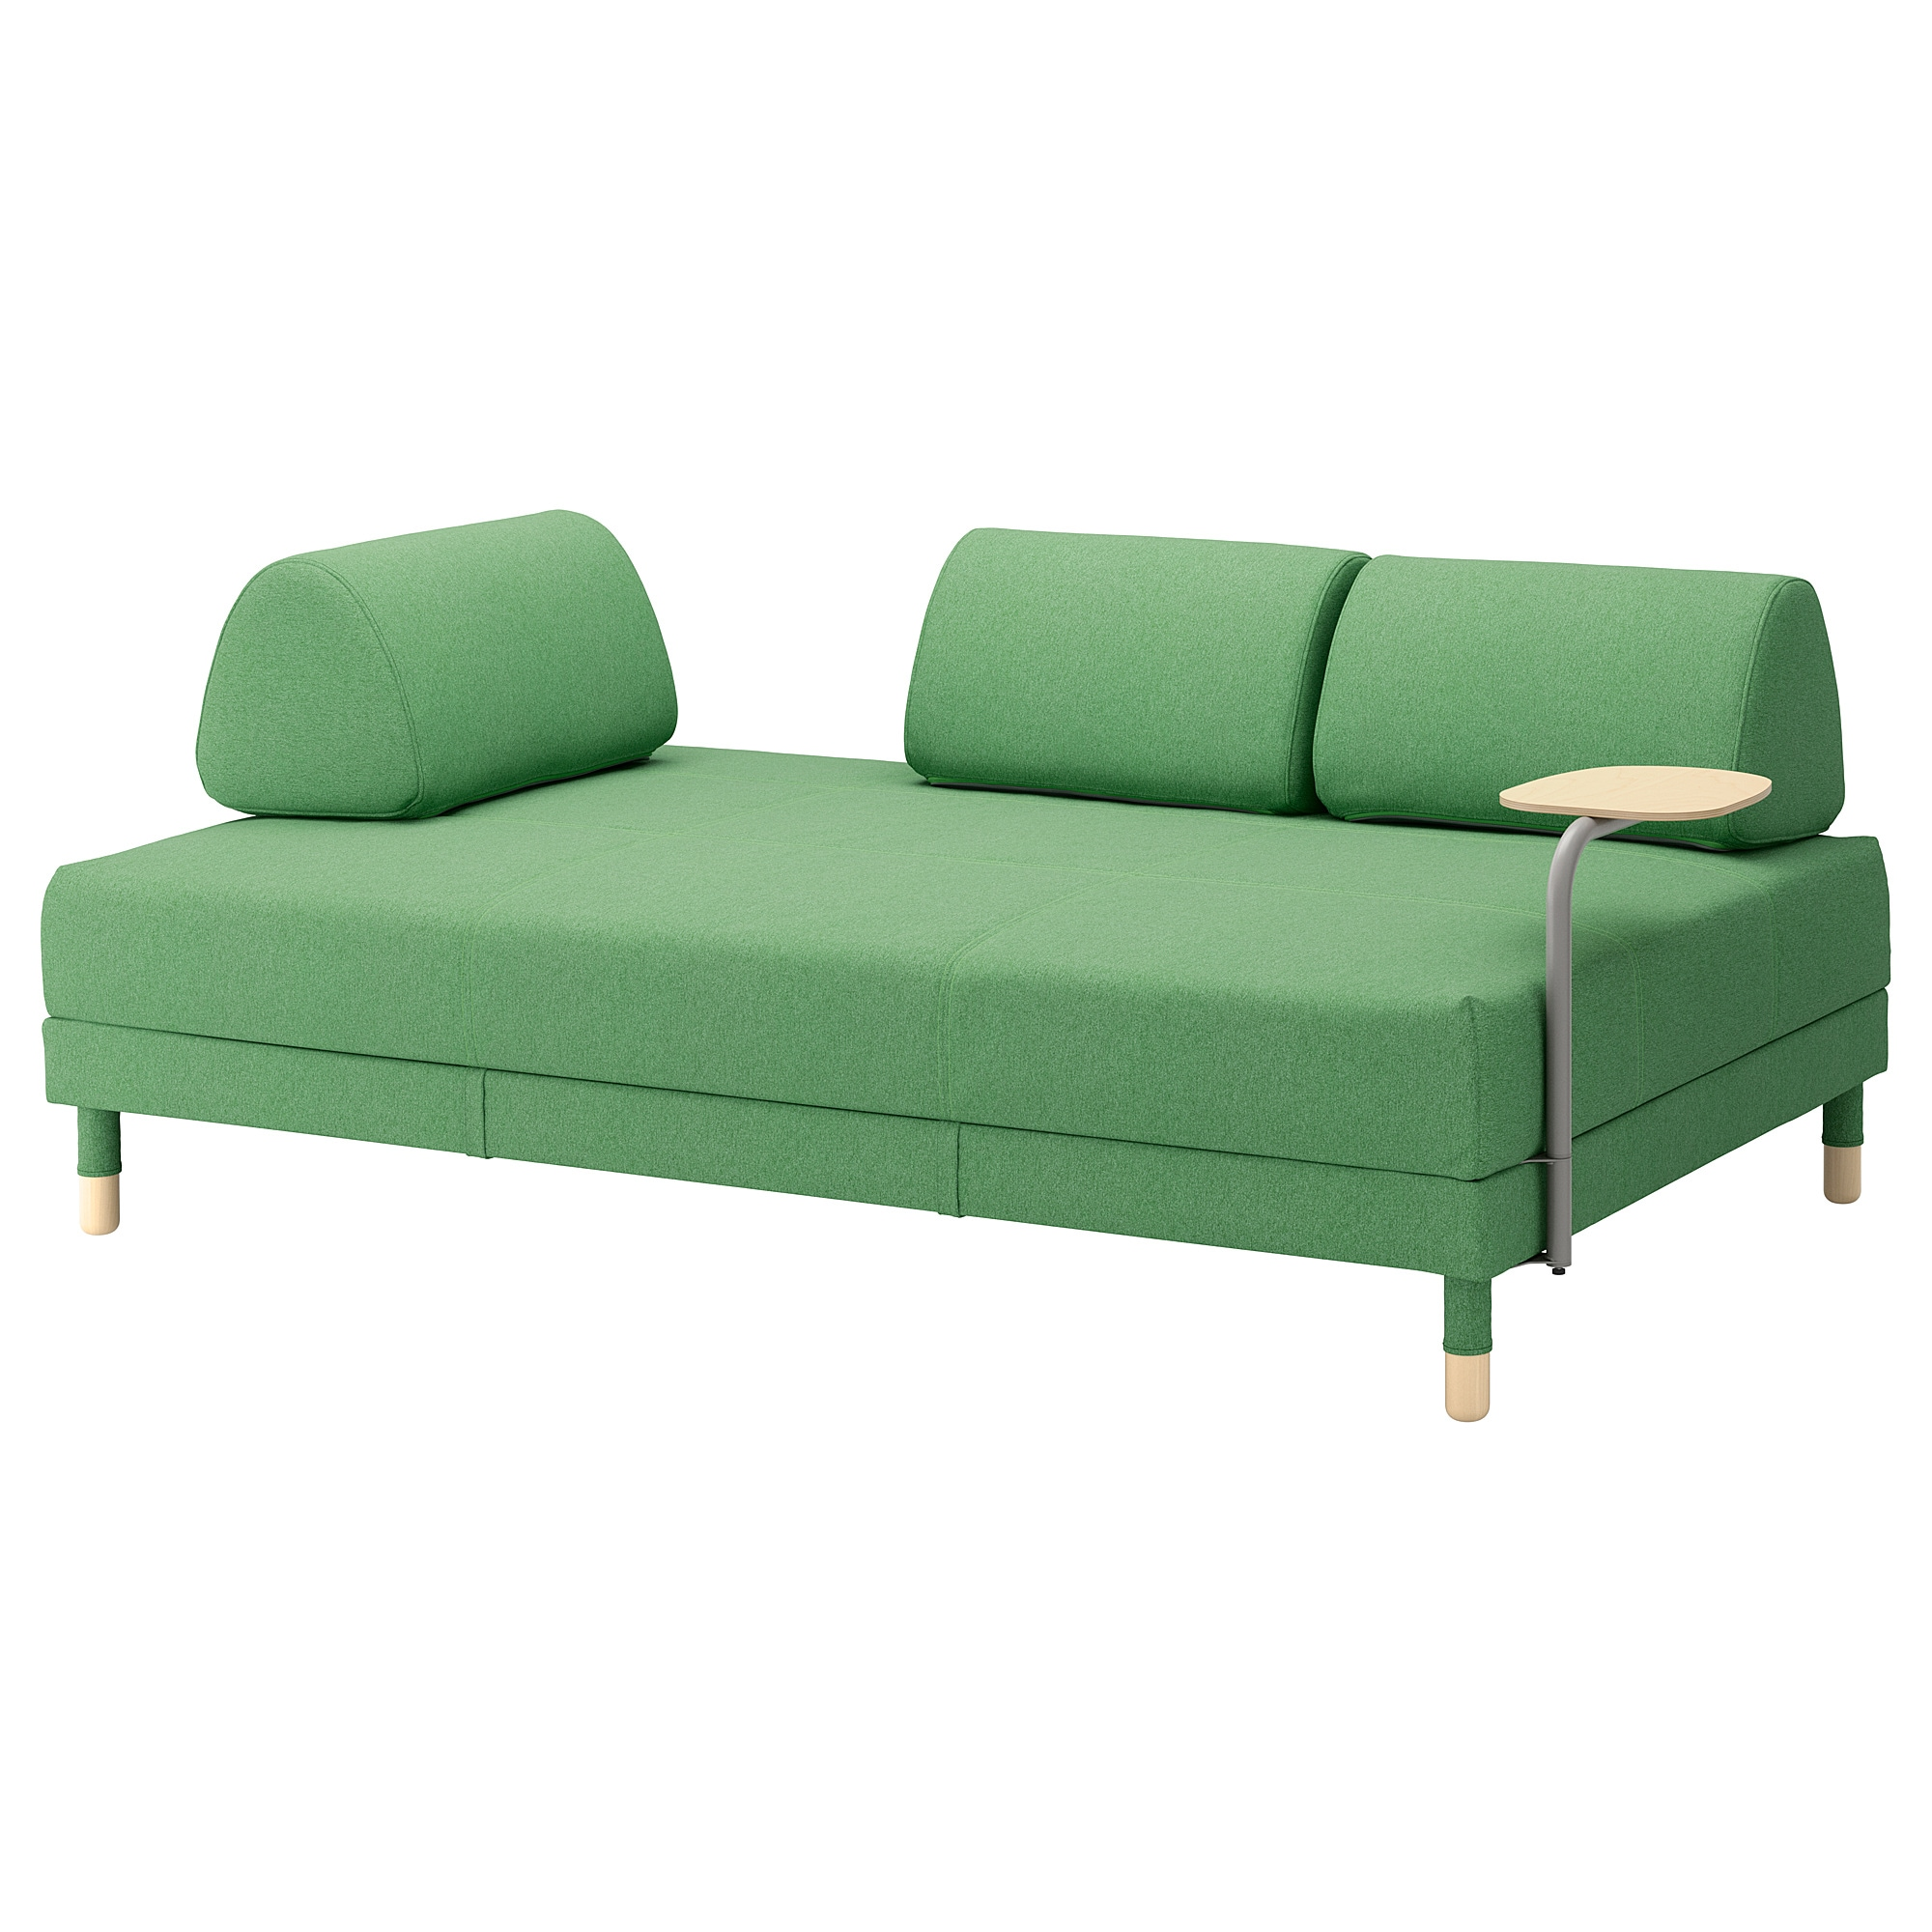 Flottebo Sleeper Sofa With Side Table Lysed Green